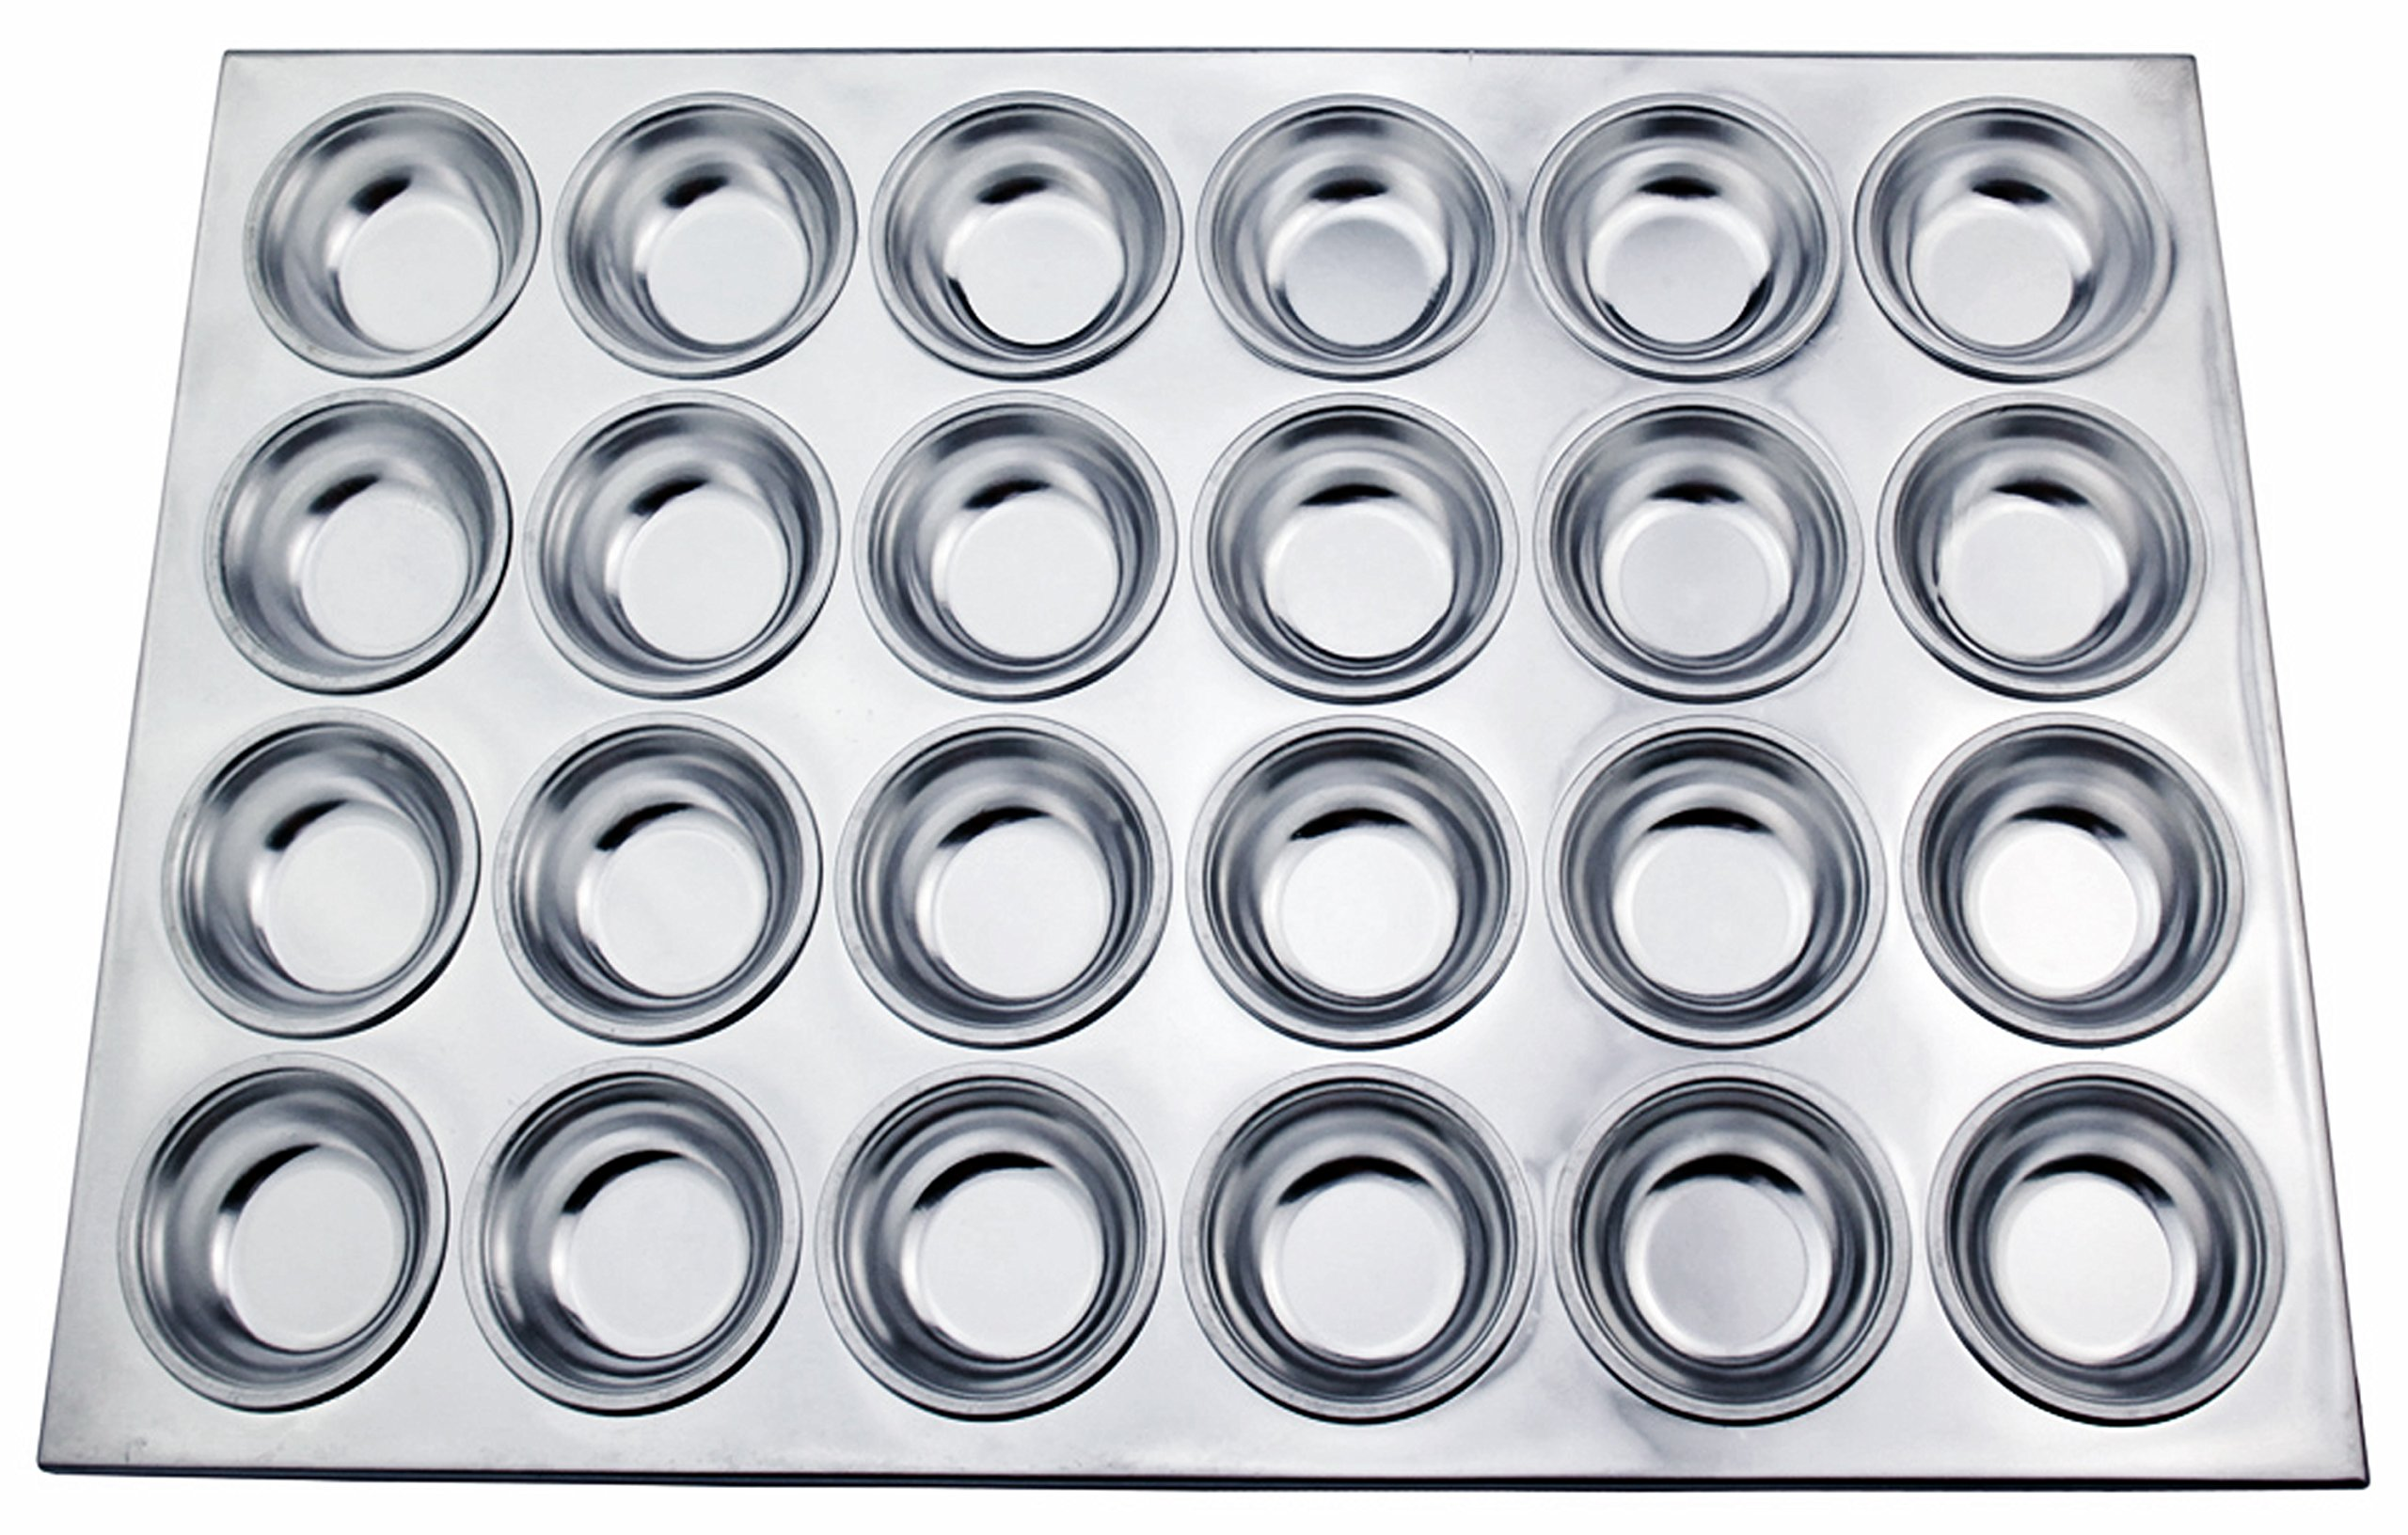 New Star Foodservice 37838 Commercial Grade Aluminum 24-Cup Muffin Pan